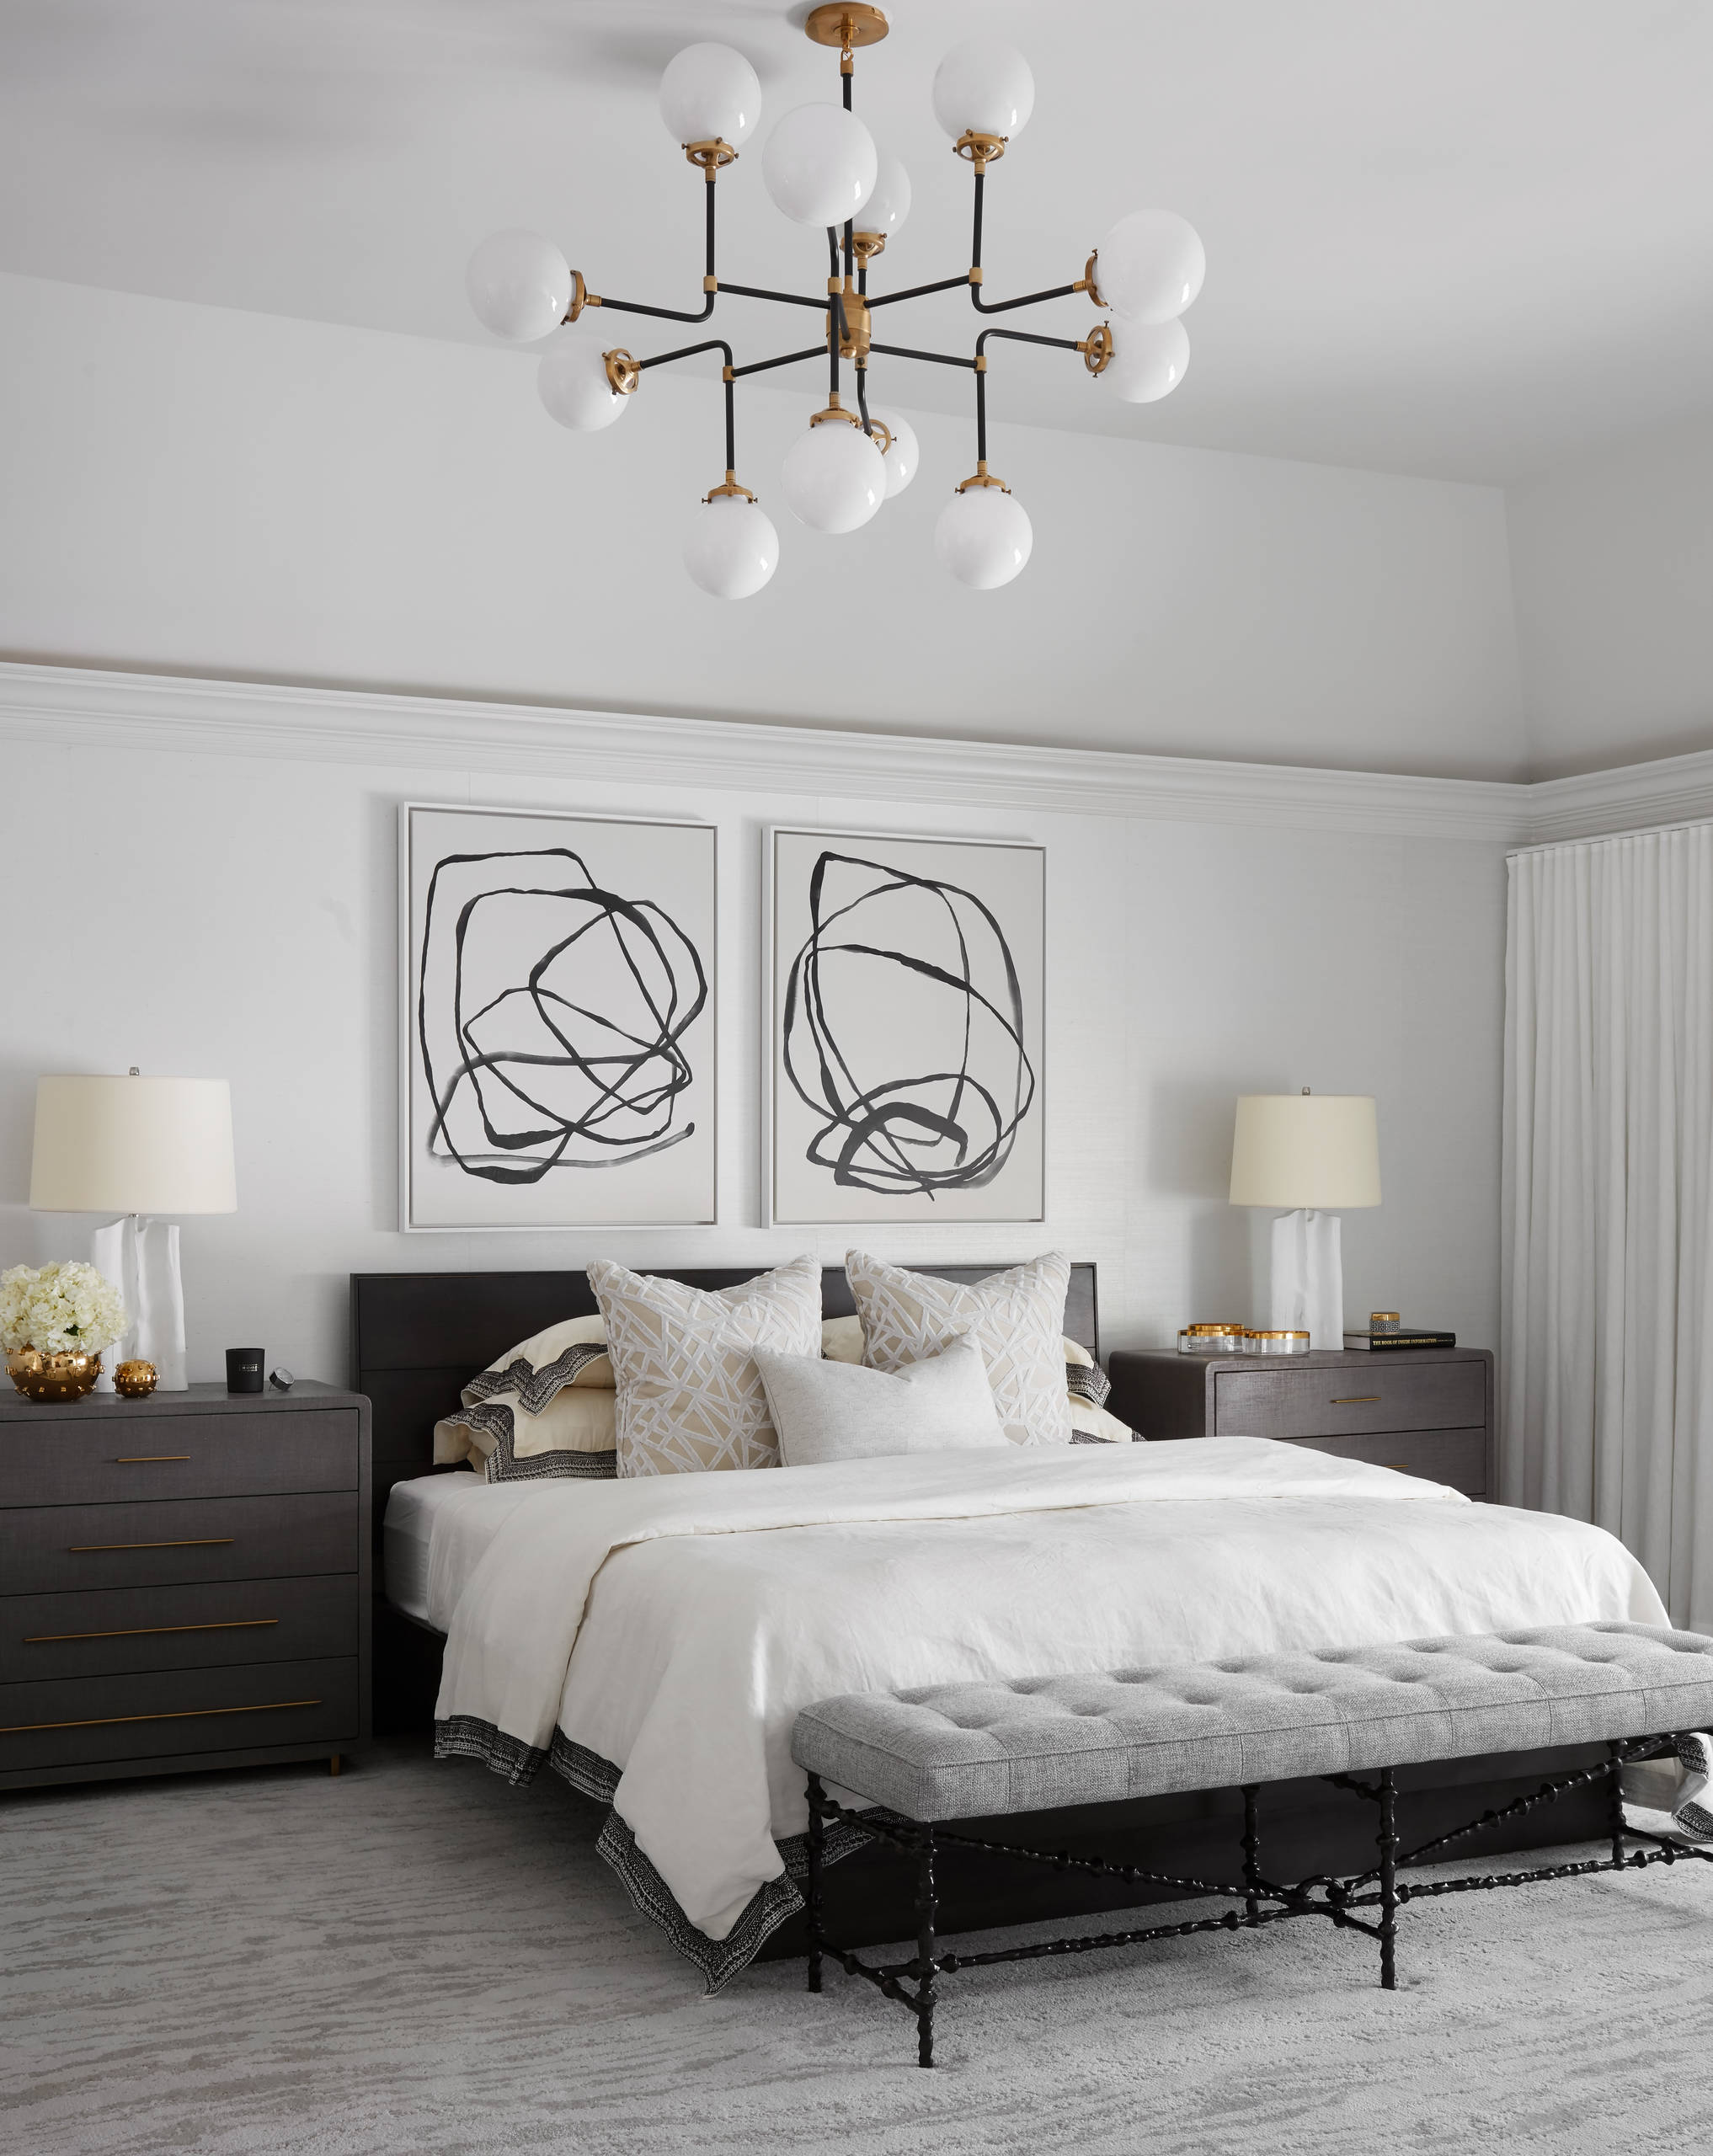 12 Beautiful Master Bedroom Pictures & Ideas - January, 12  Houzz